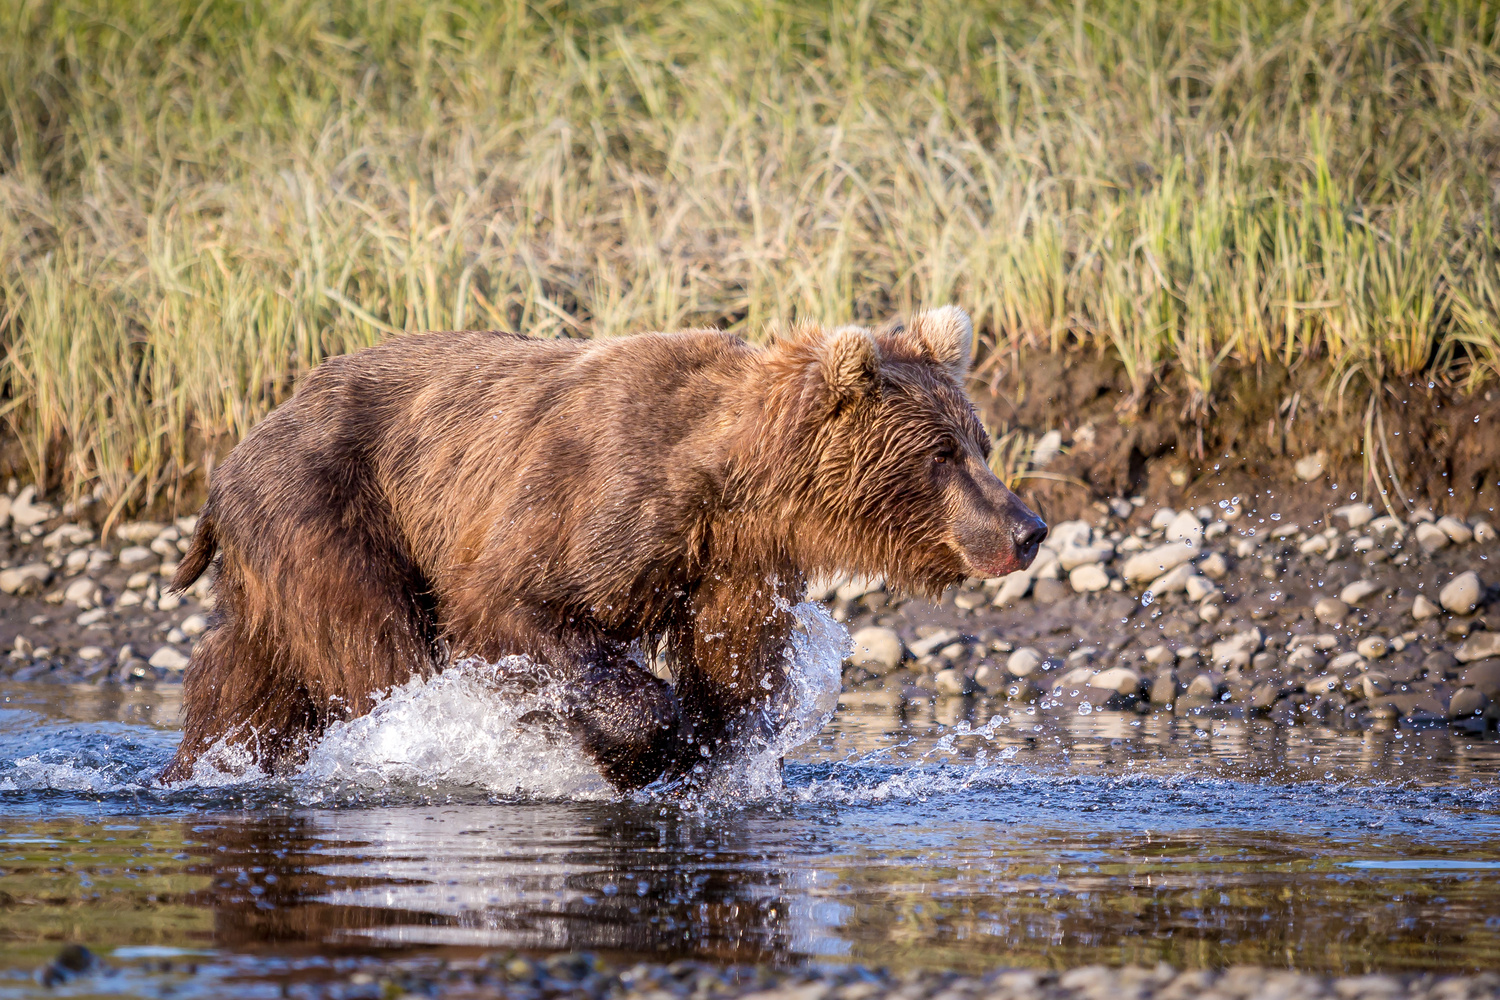 Bear hunting for fish by Daniel Wise